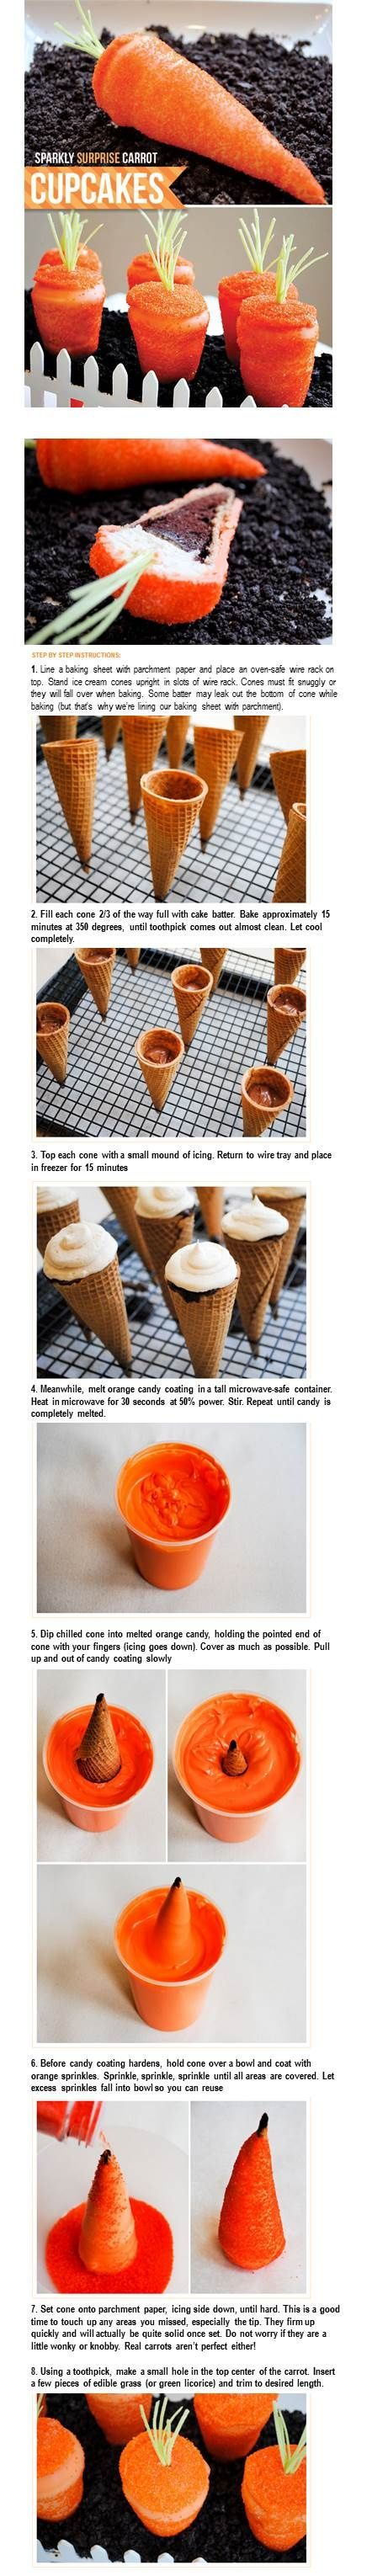 Carrot-shaped cupcakes.